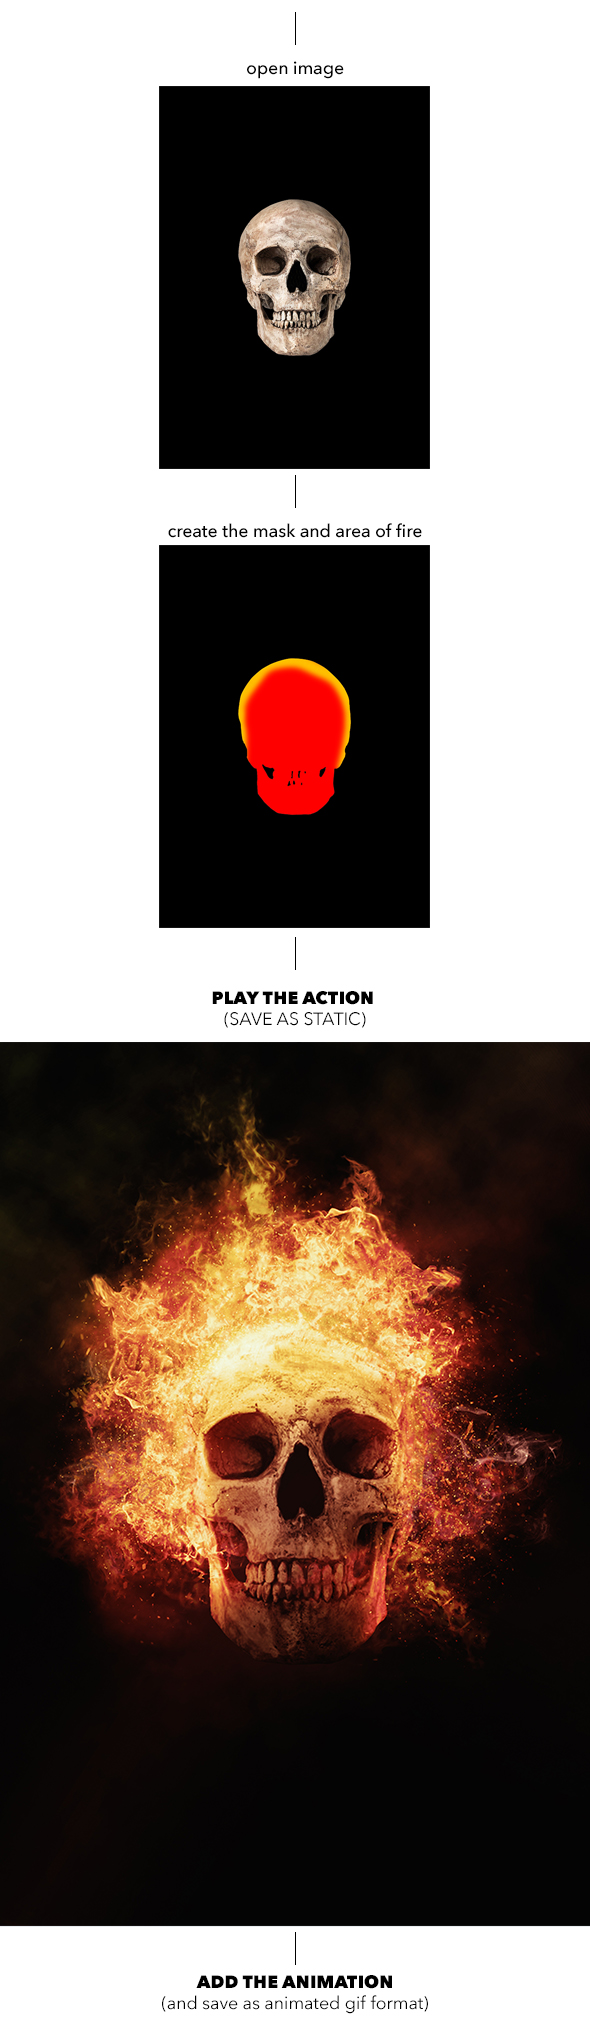 Gif Animated Fire Photoshop Action - 4